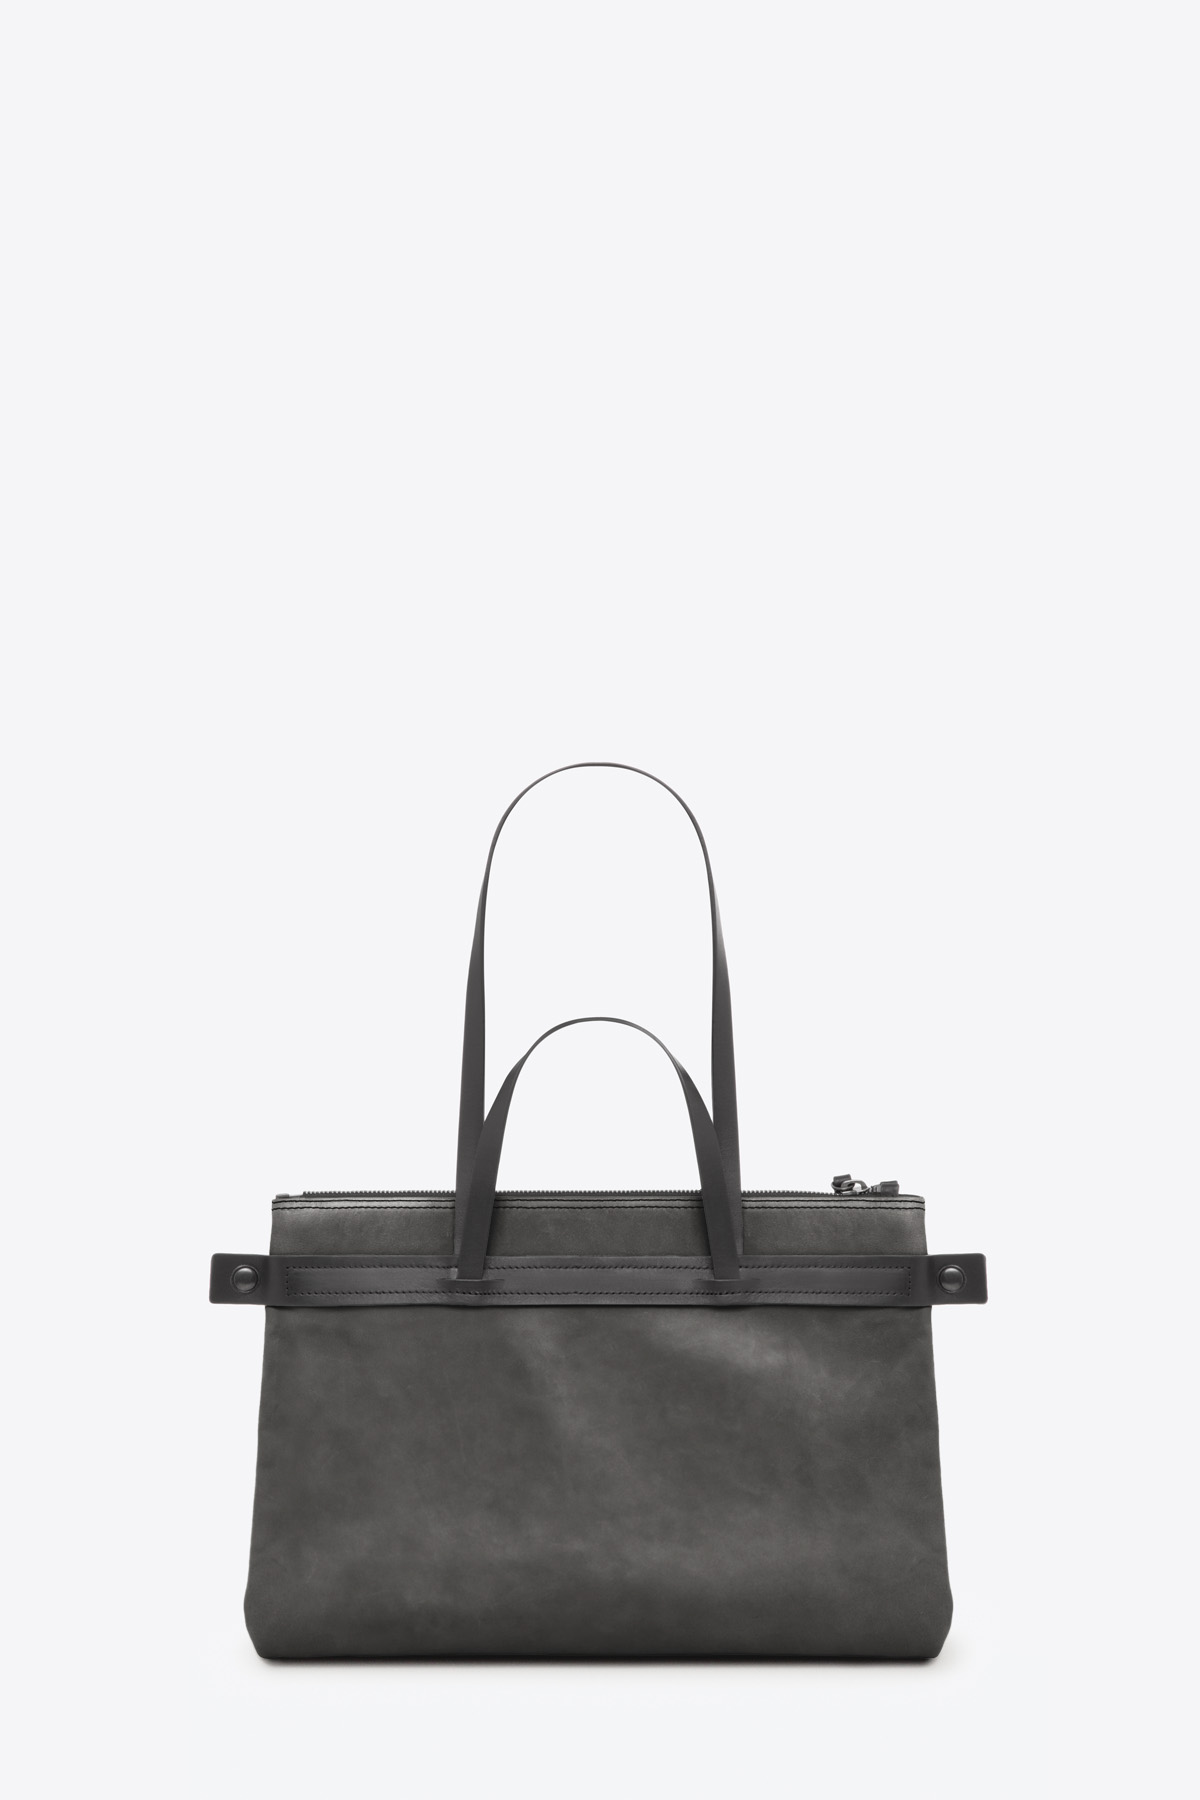 dclr007s-tote-a2-shadowgray-back